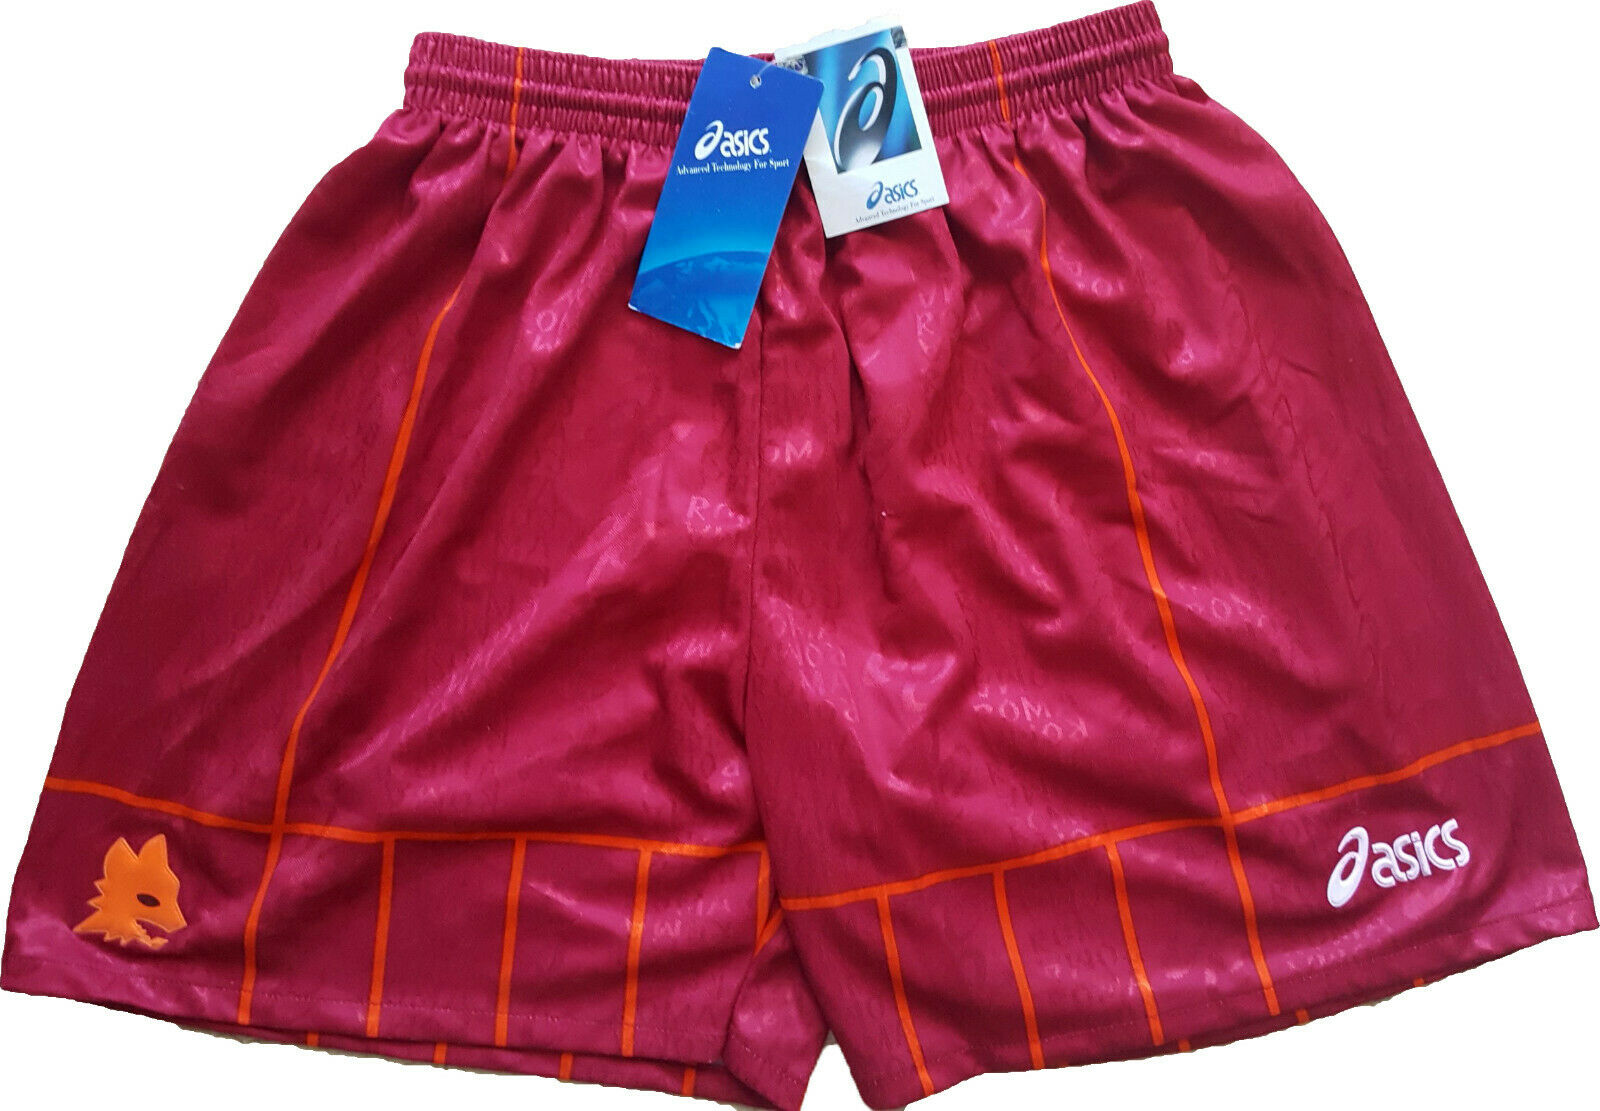 Totti shorts 1996 1997 asics Jugarer issue Jugarer issue magazzino  NEW XL  todos los bienes son especiales